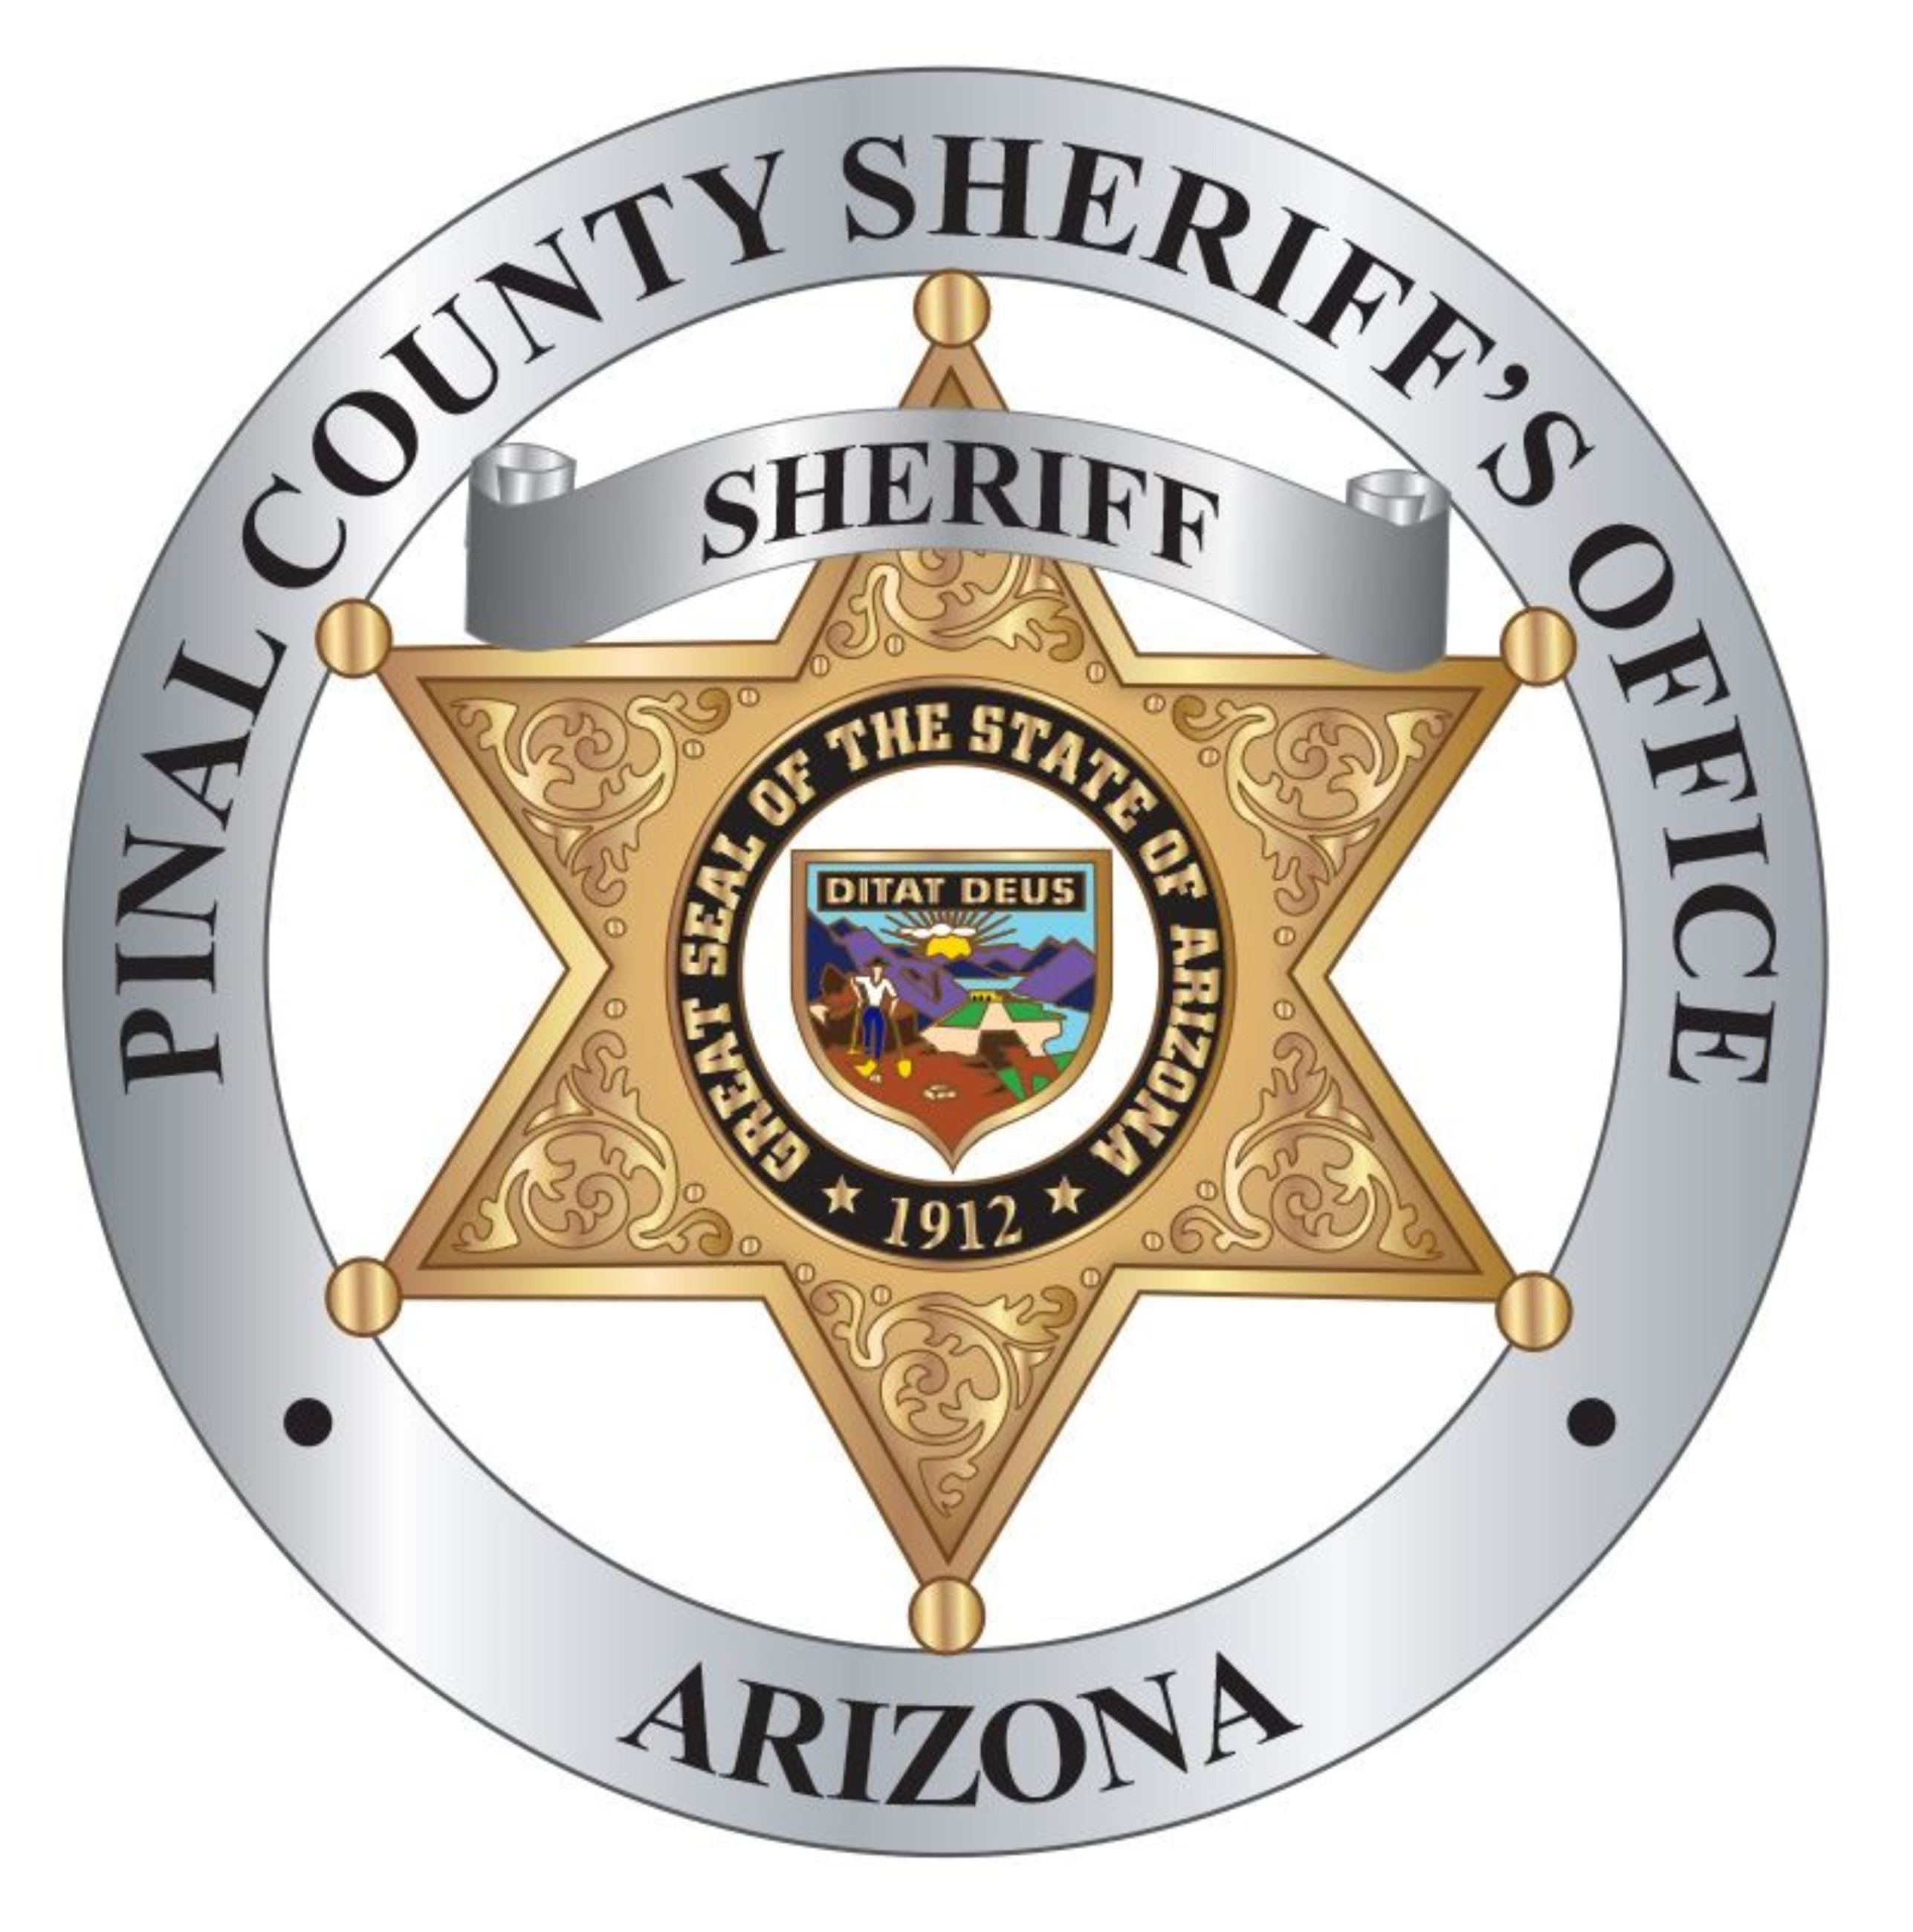 Pinal County Badge White background